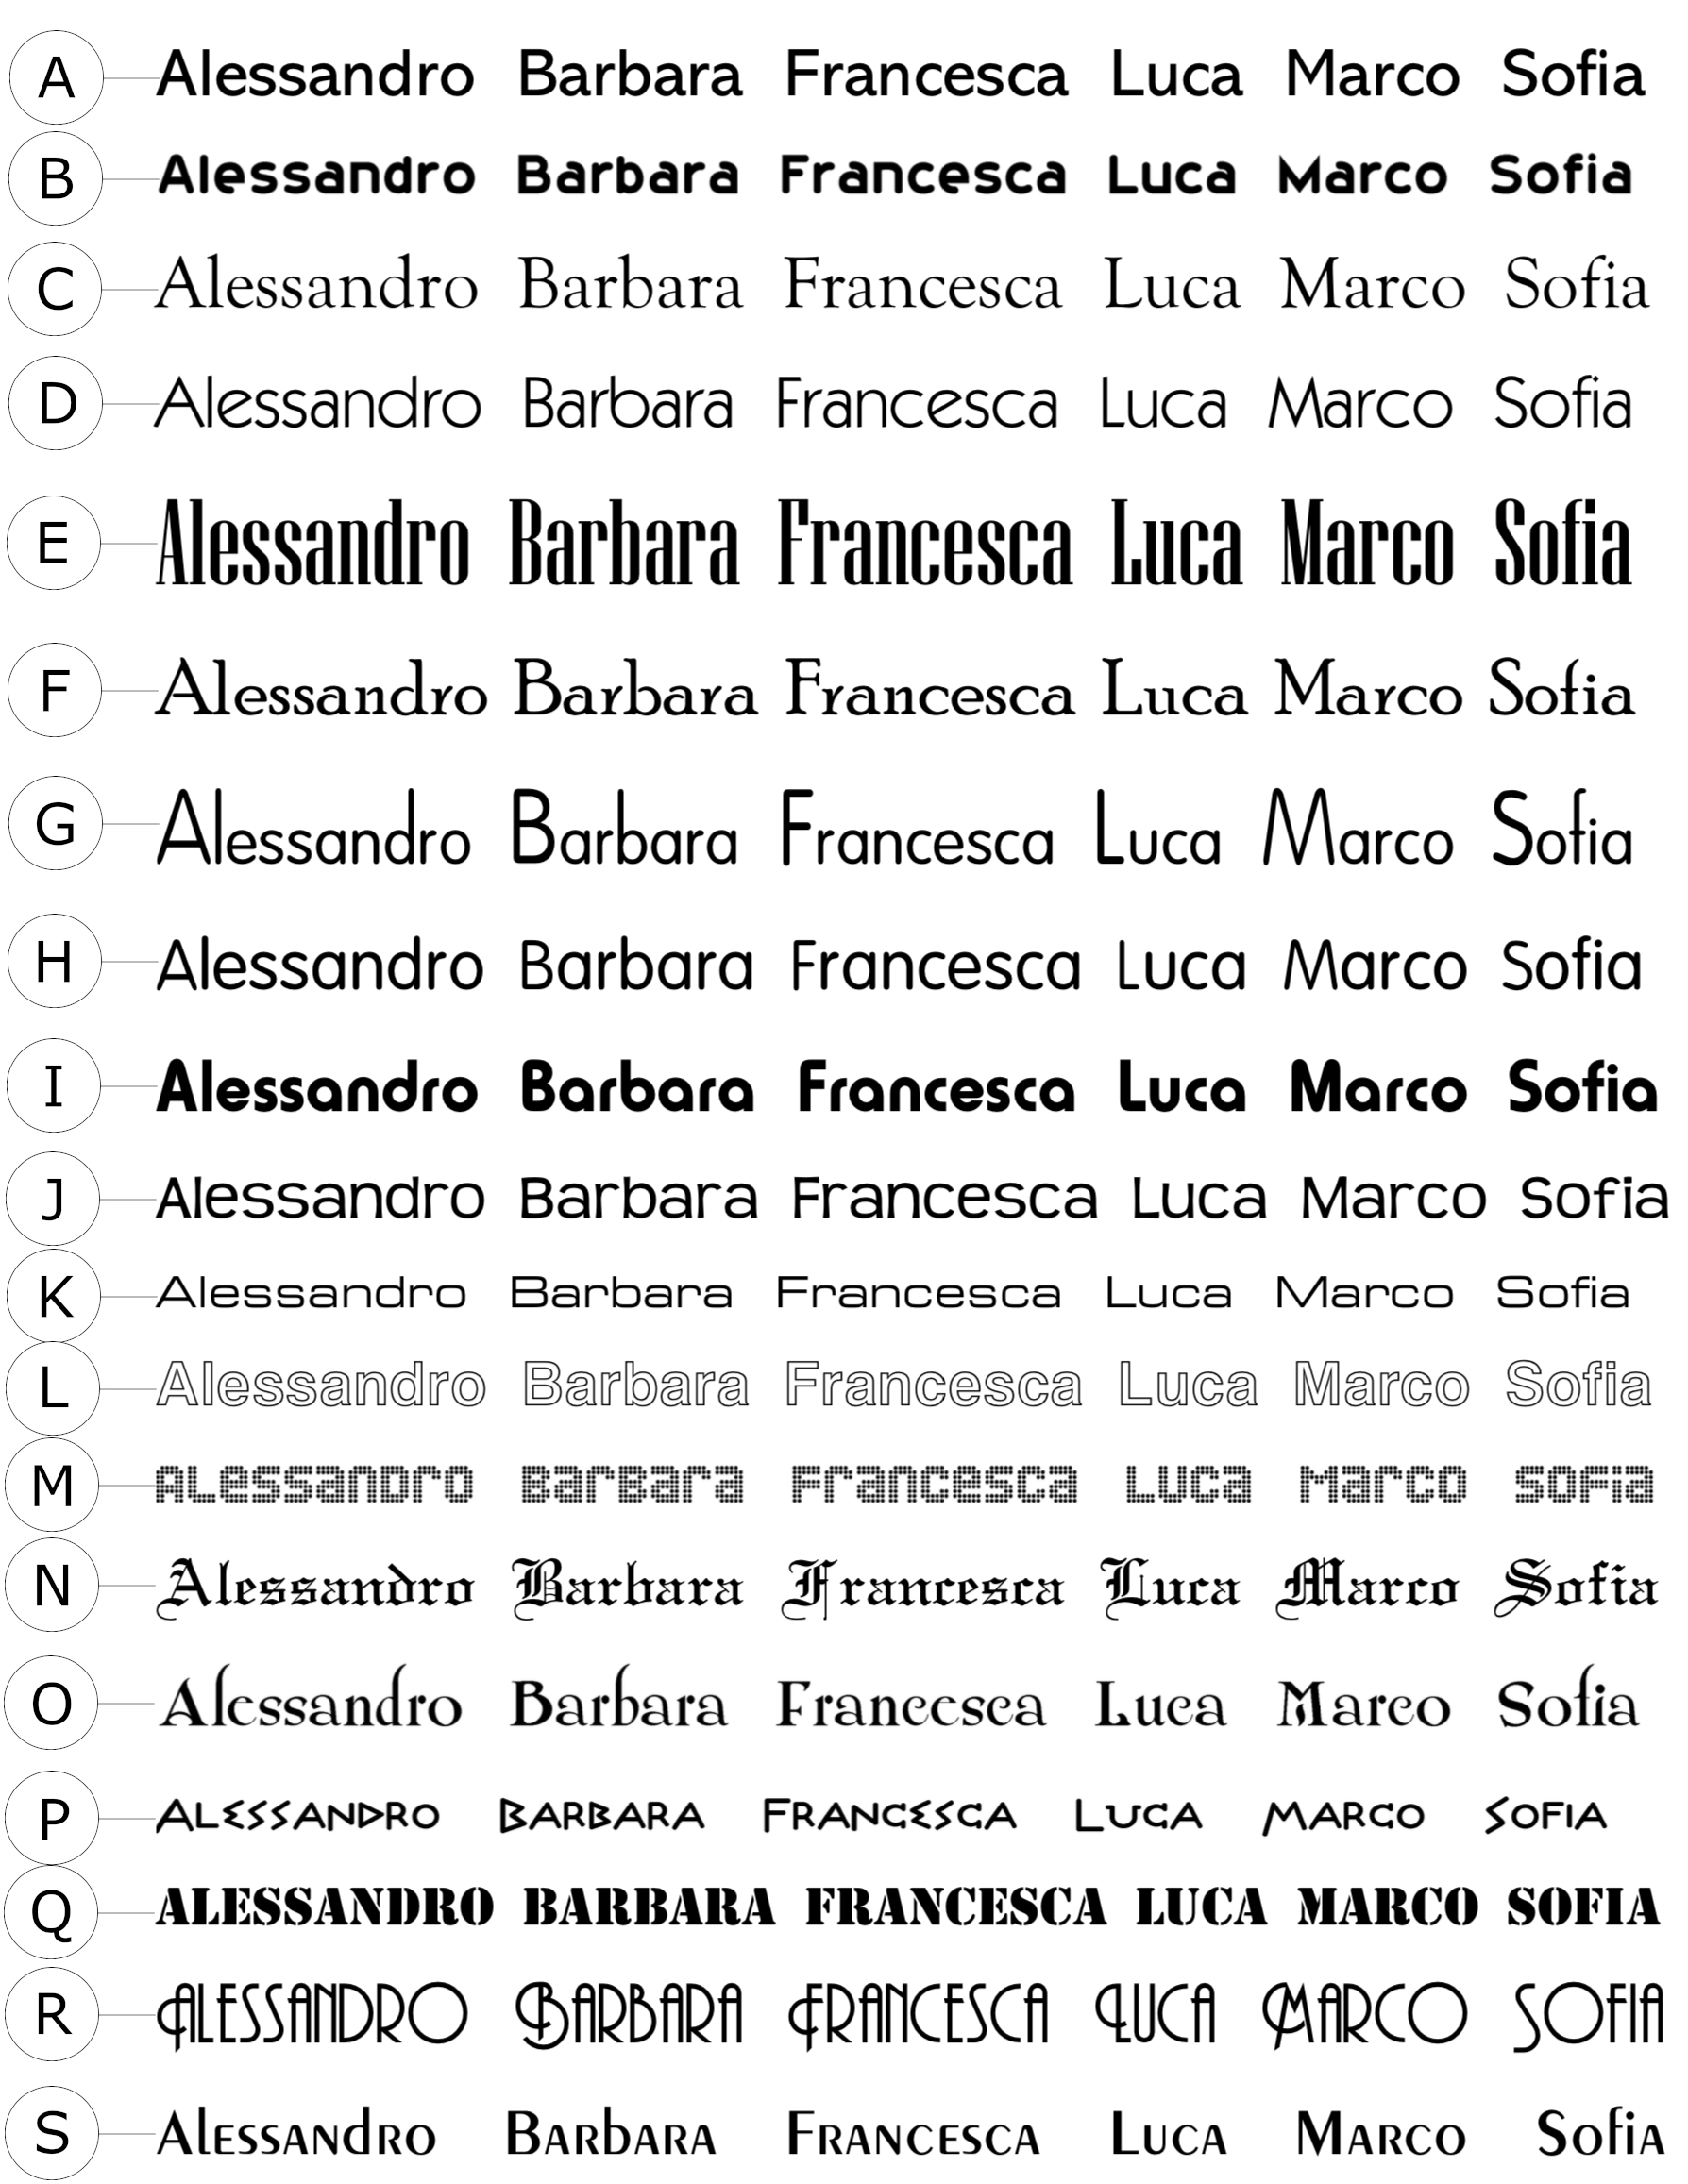 elenco font incisioni pagina 1